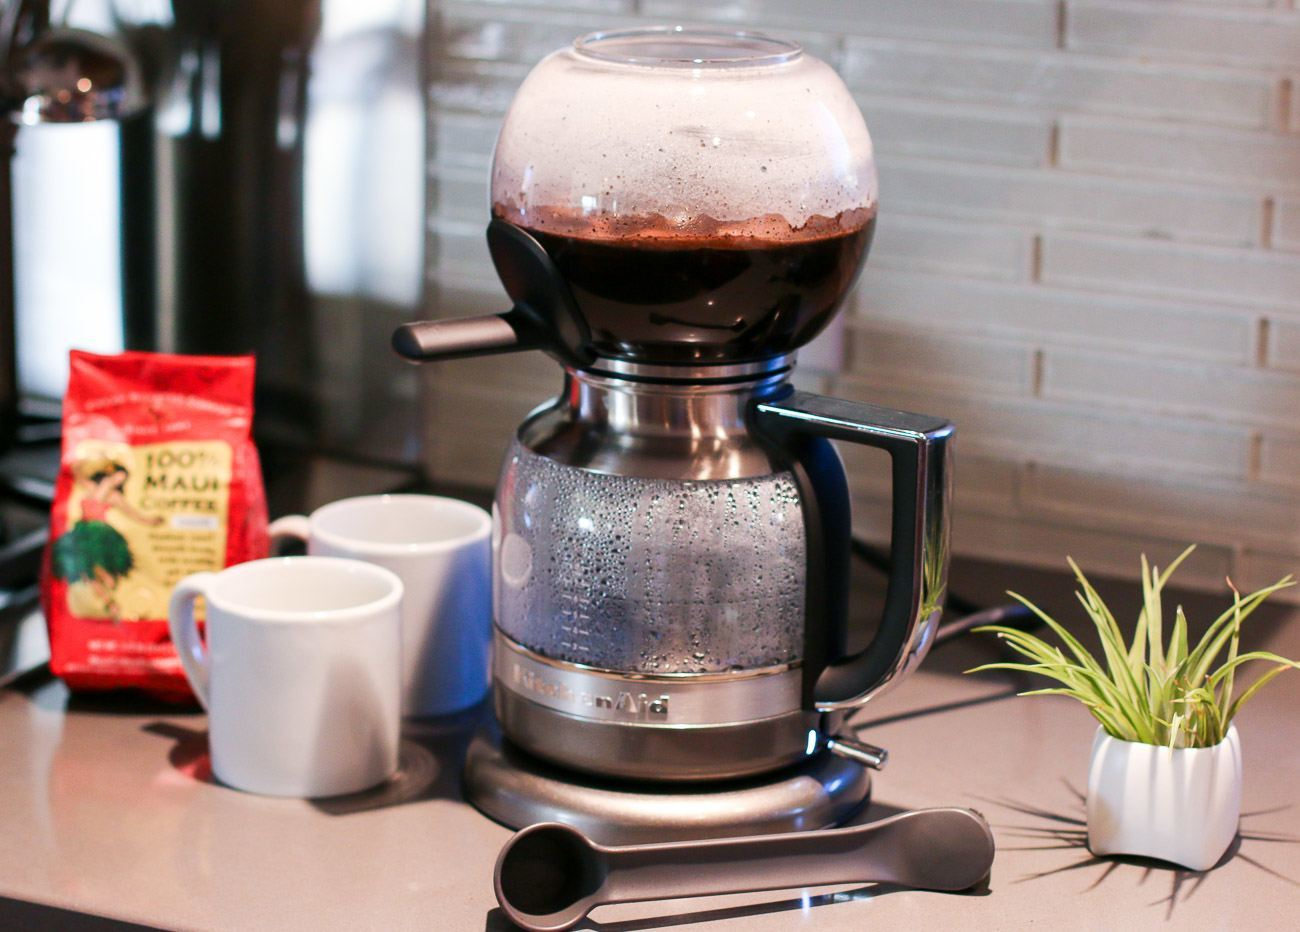 Amazing coffee brewing in a KitchenAid Siphon Coffee Brewer.